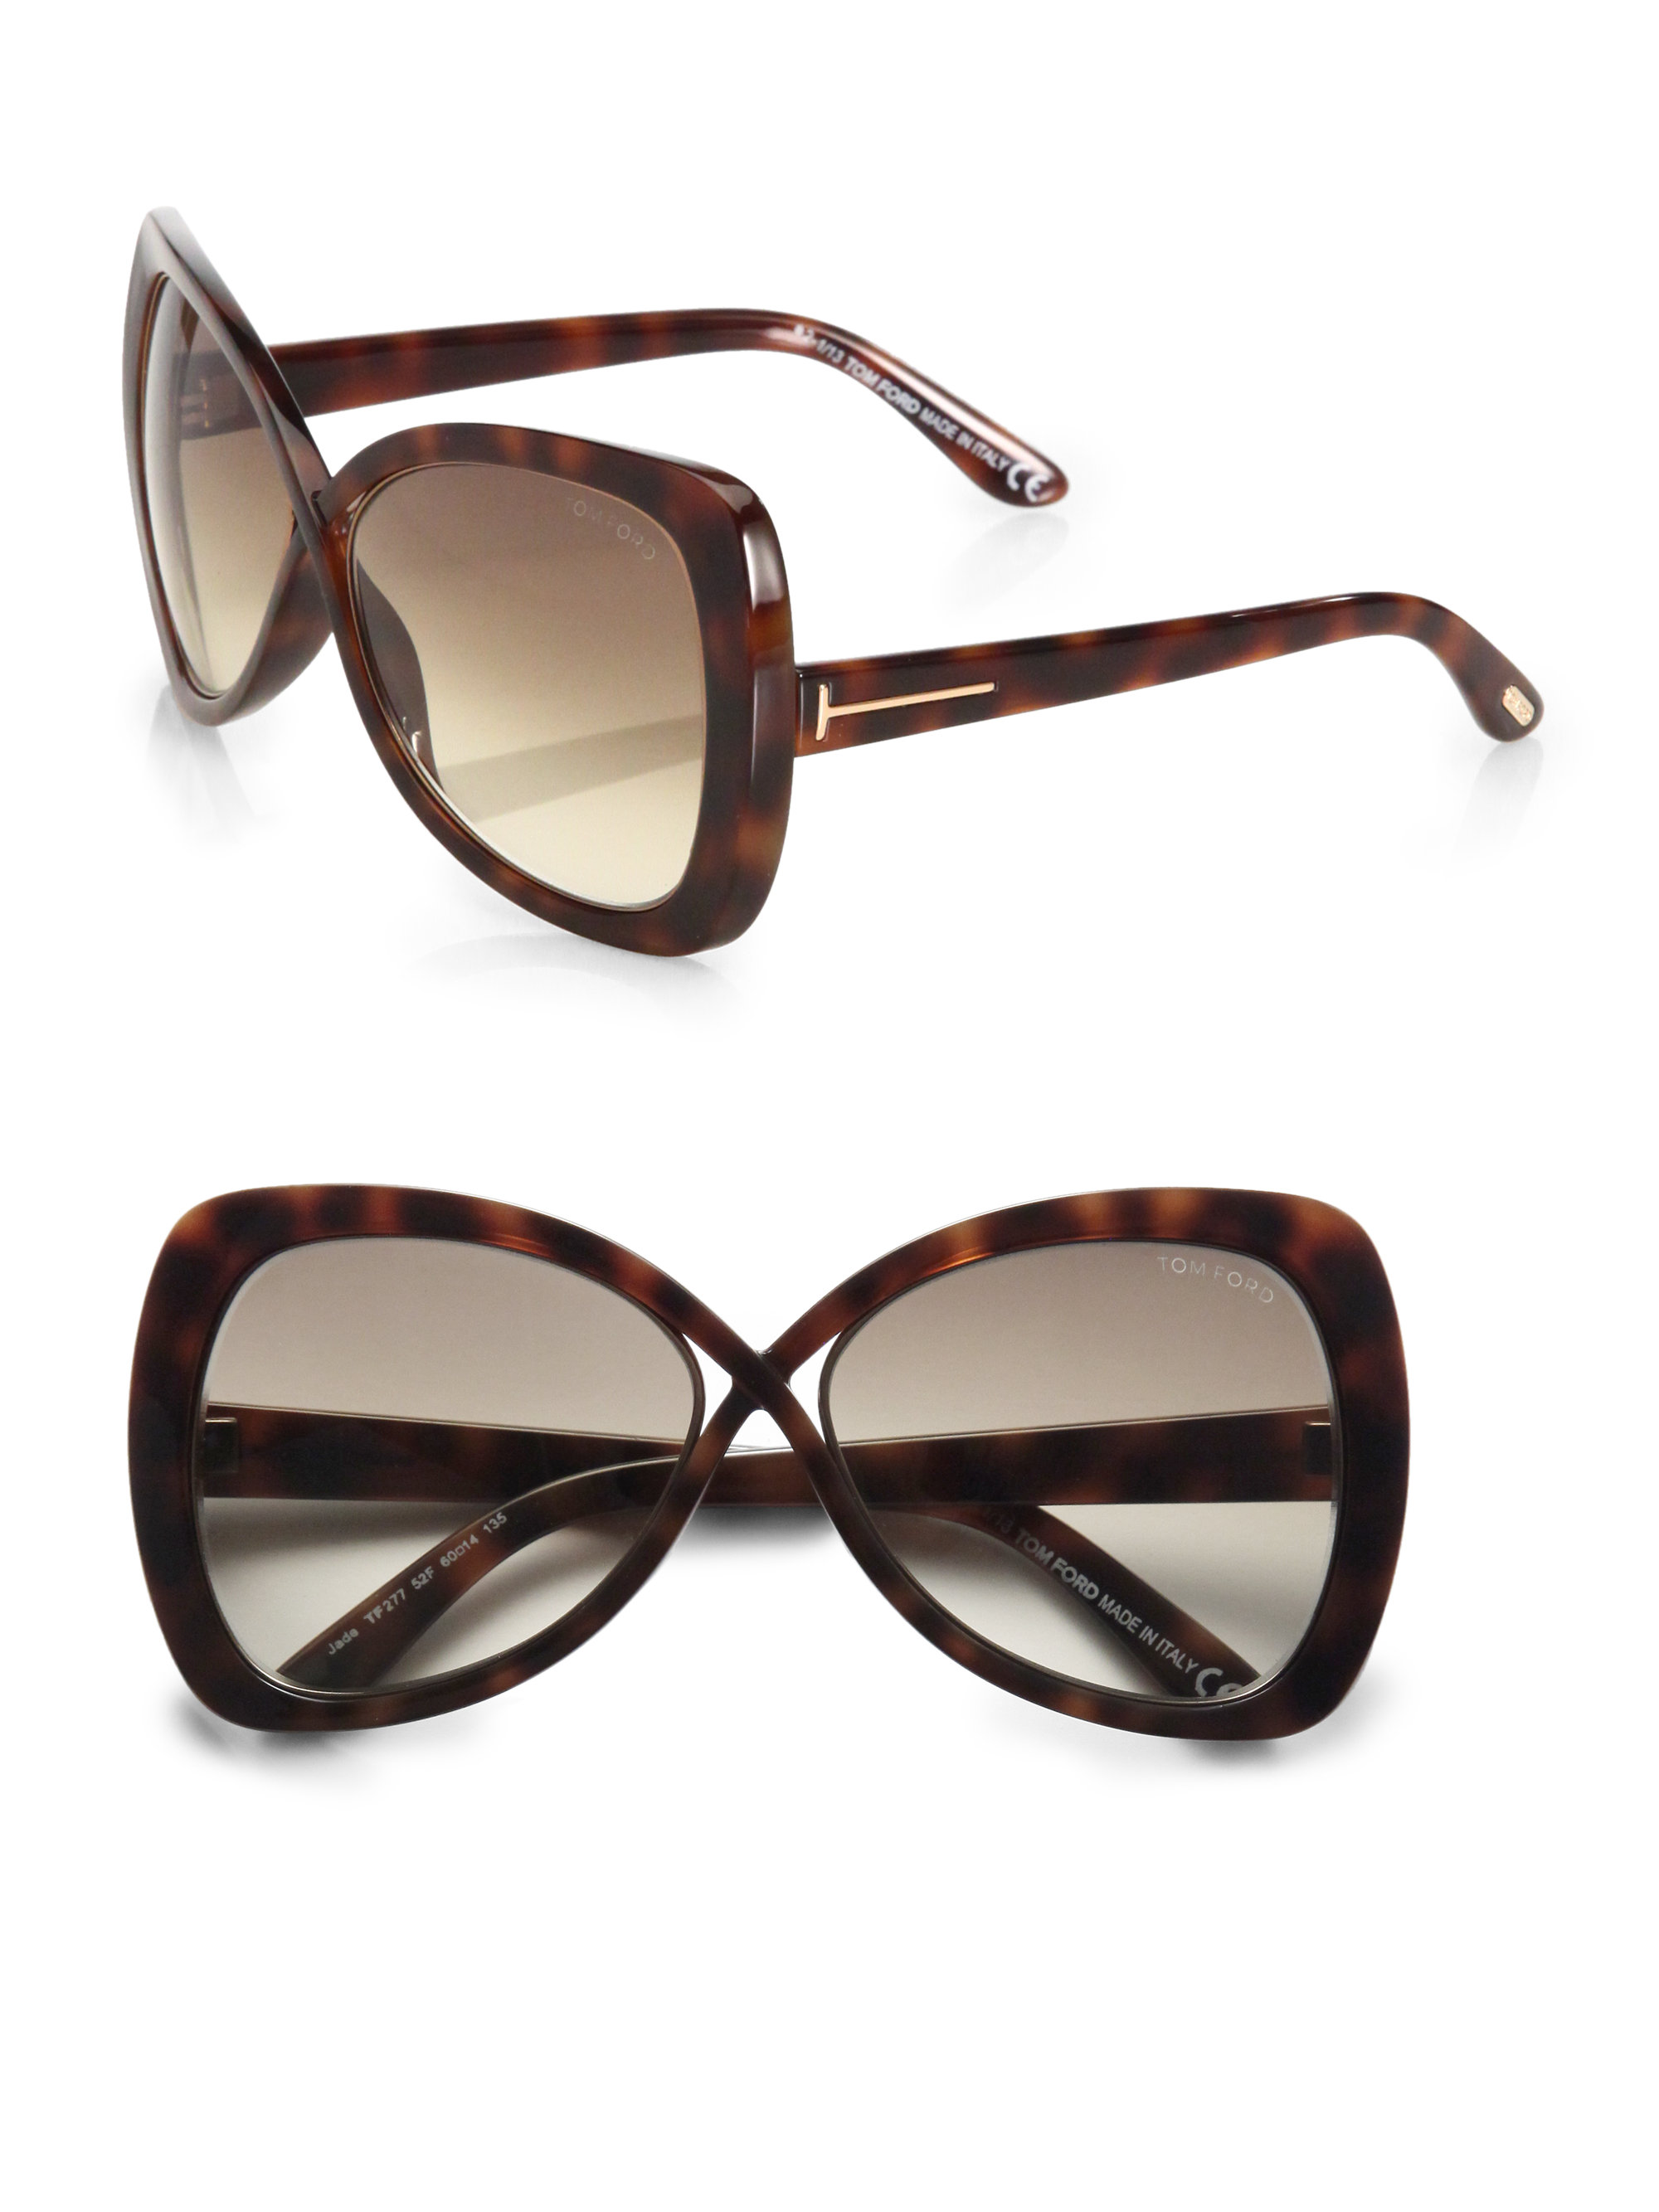 2157bb604a26 Lyst - Tom Ford Jade Injected Square Sunglasses in Brown